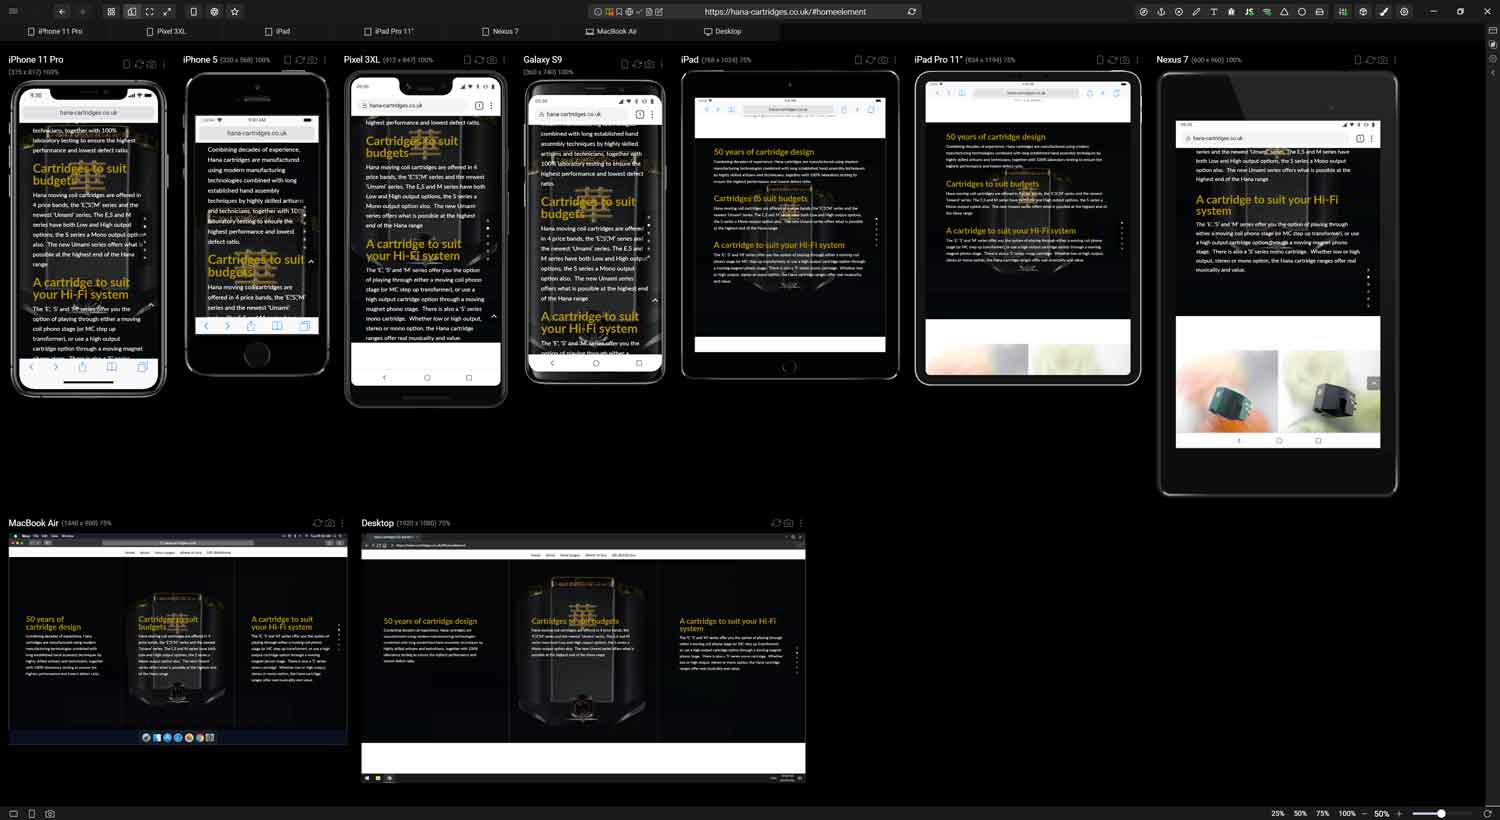 Mobile testing web design across multiple devices